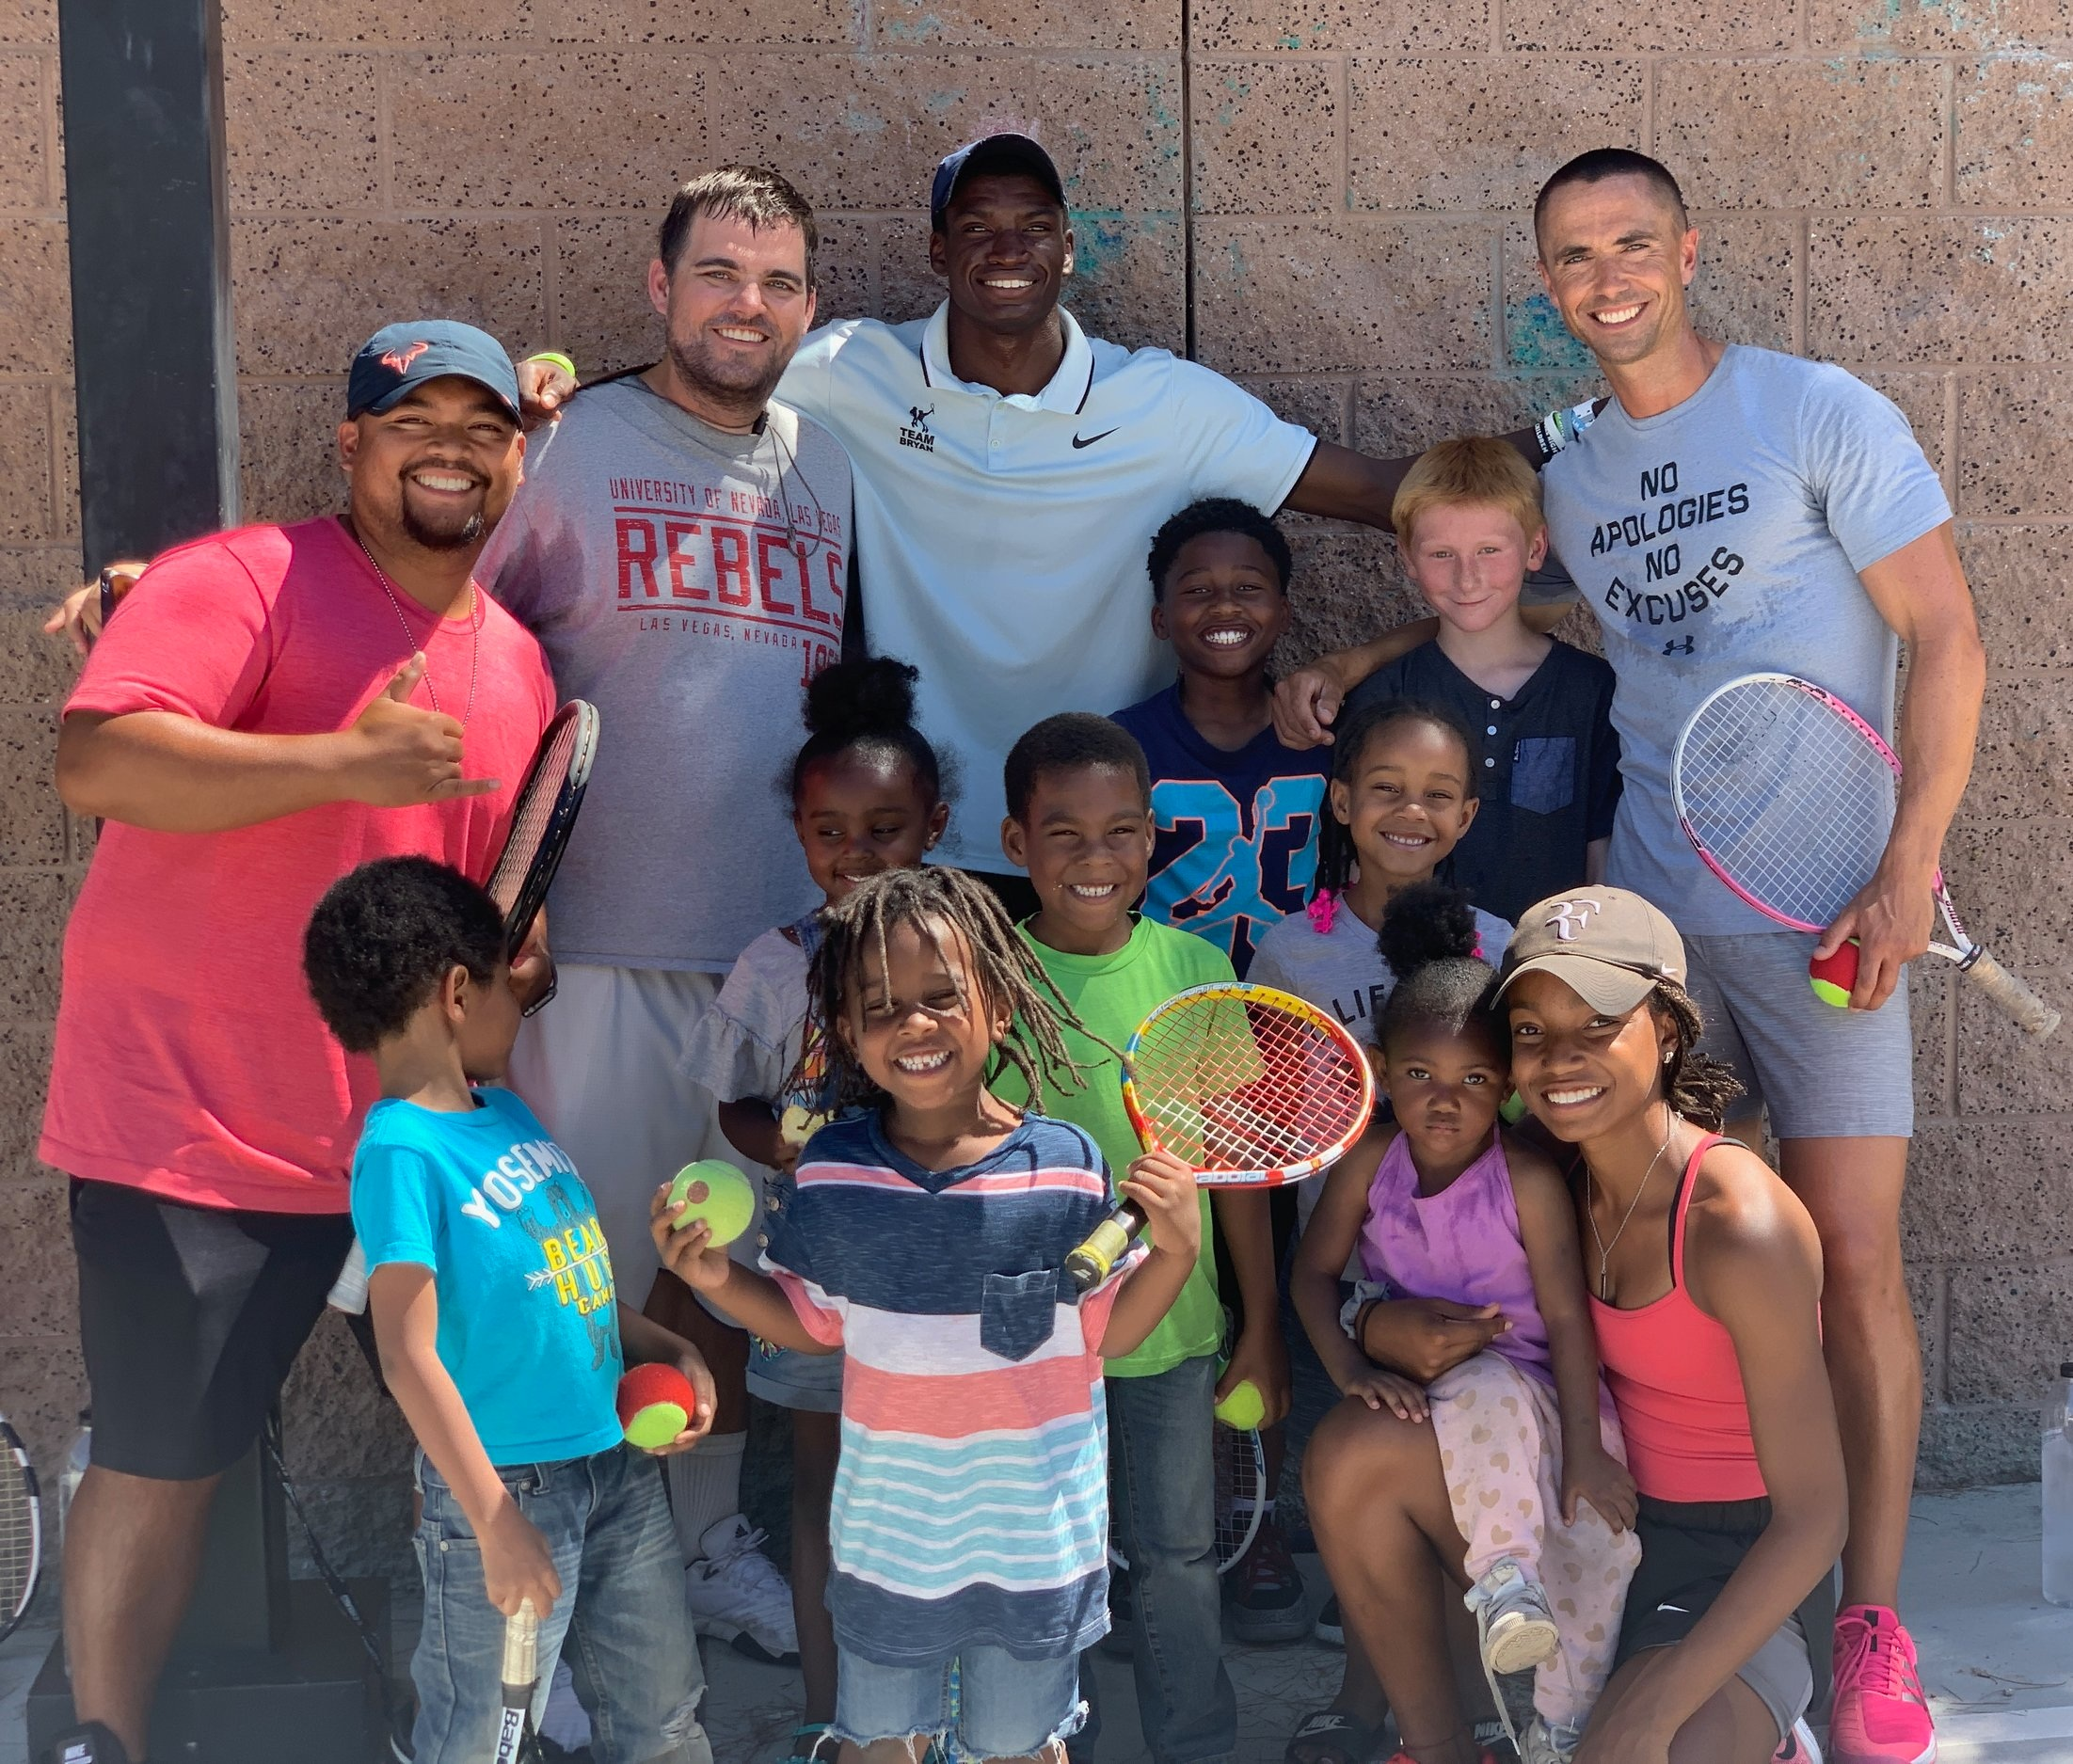 """Tennis On Wheels"" - USPTA Intermountain Division VP & U30 Lead Karl Jones and USPTA U30 Professionals Rudy Abitago, Jake Lysgaard, and Ricky Sypert with kids at The Shade Tree homeless shelter.Through their USPTA U30 ""Tennis On Wheels"" service, U30 professionals provided at-risk children at The Shade Tree, a safe shelter for homeless and/or abused women and children, with a tennis event at their facility."